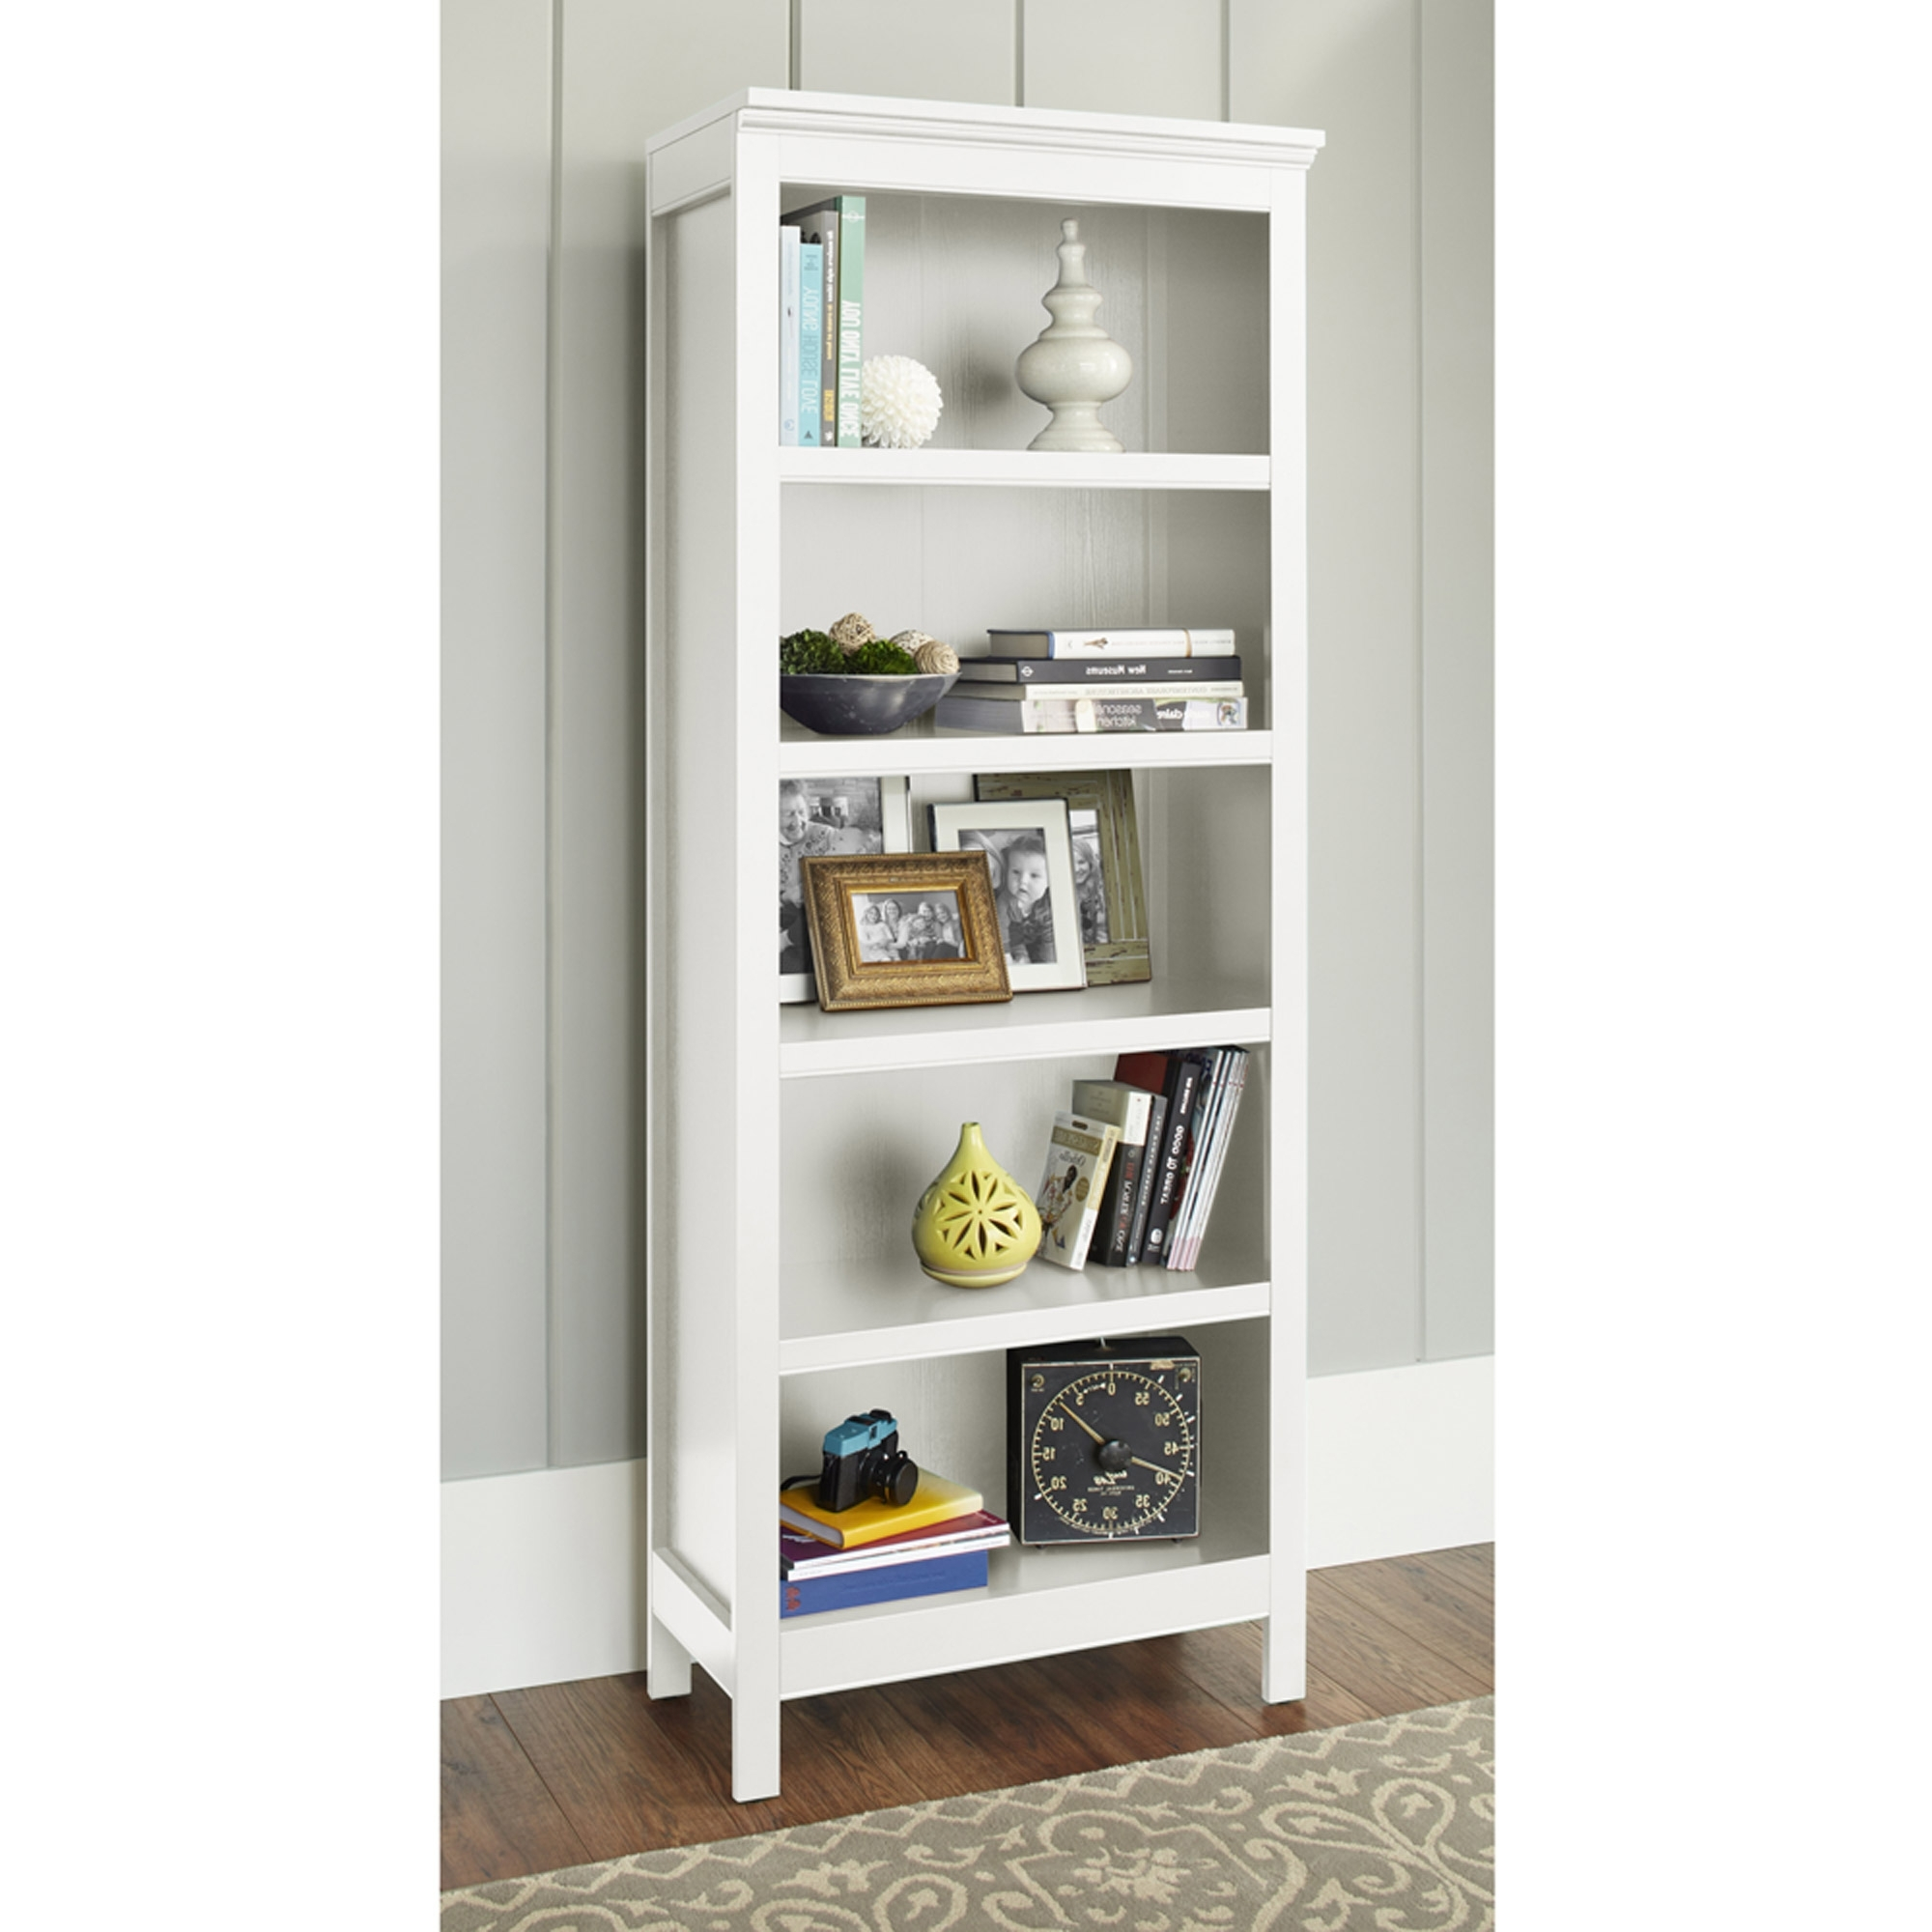 Newest 3 Shelf Bookcases Walmart With Regard To Product (View 11 of 15)